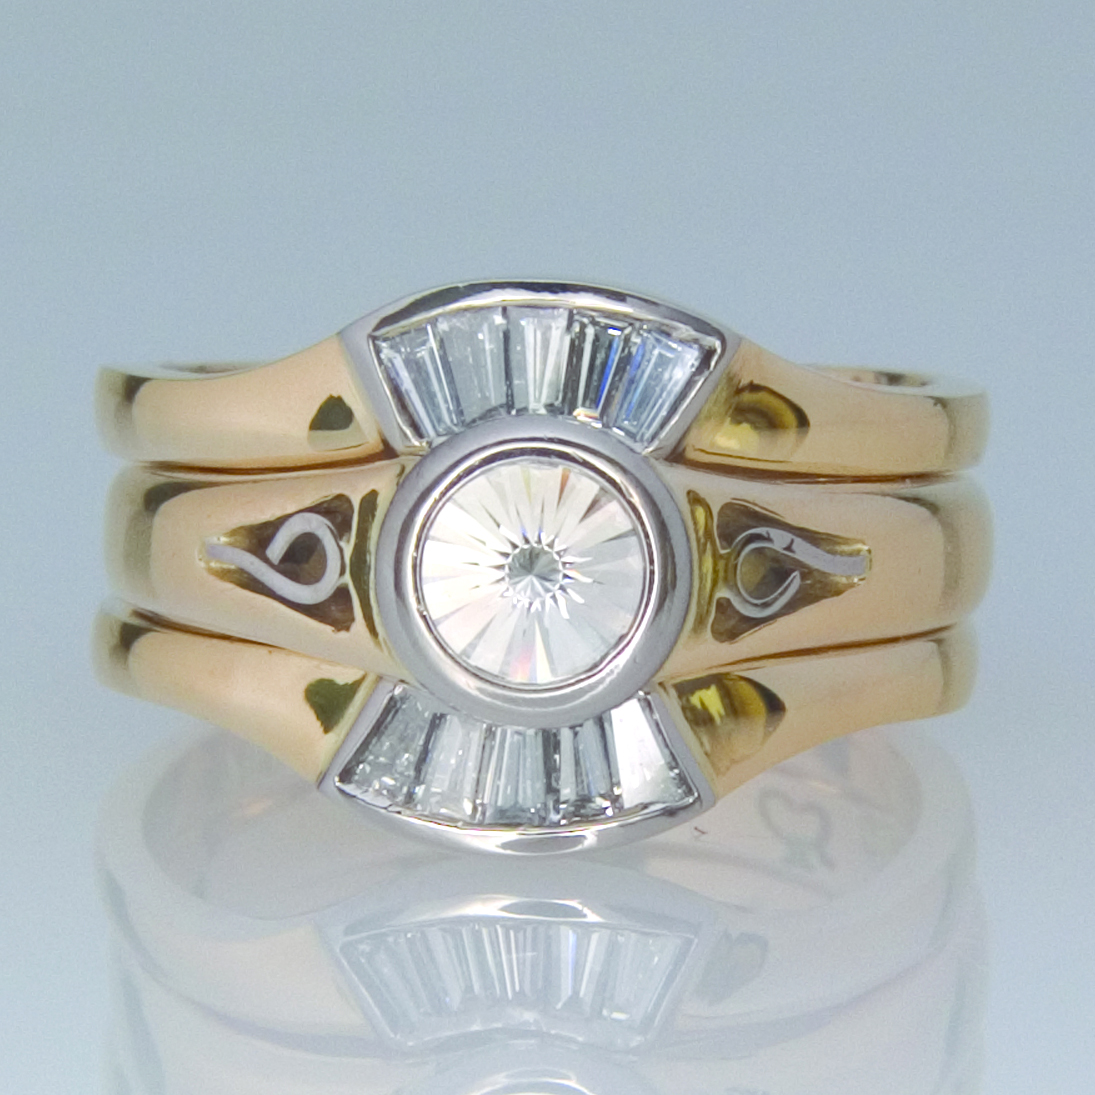 Handmade 18ct yellow gold ring set featuring a 'Spirit' diamond bezel set in white gold and a matching wedding and eternity ring featuring channel set tapered baguette diamonds.